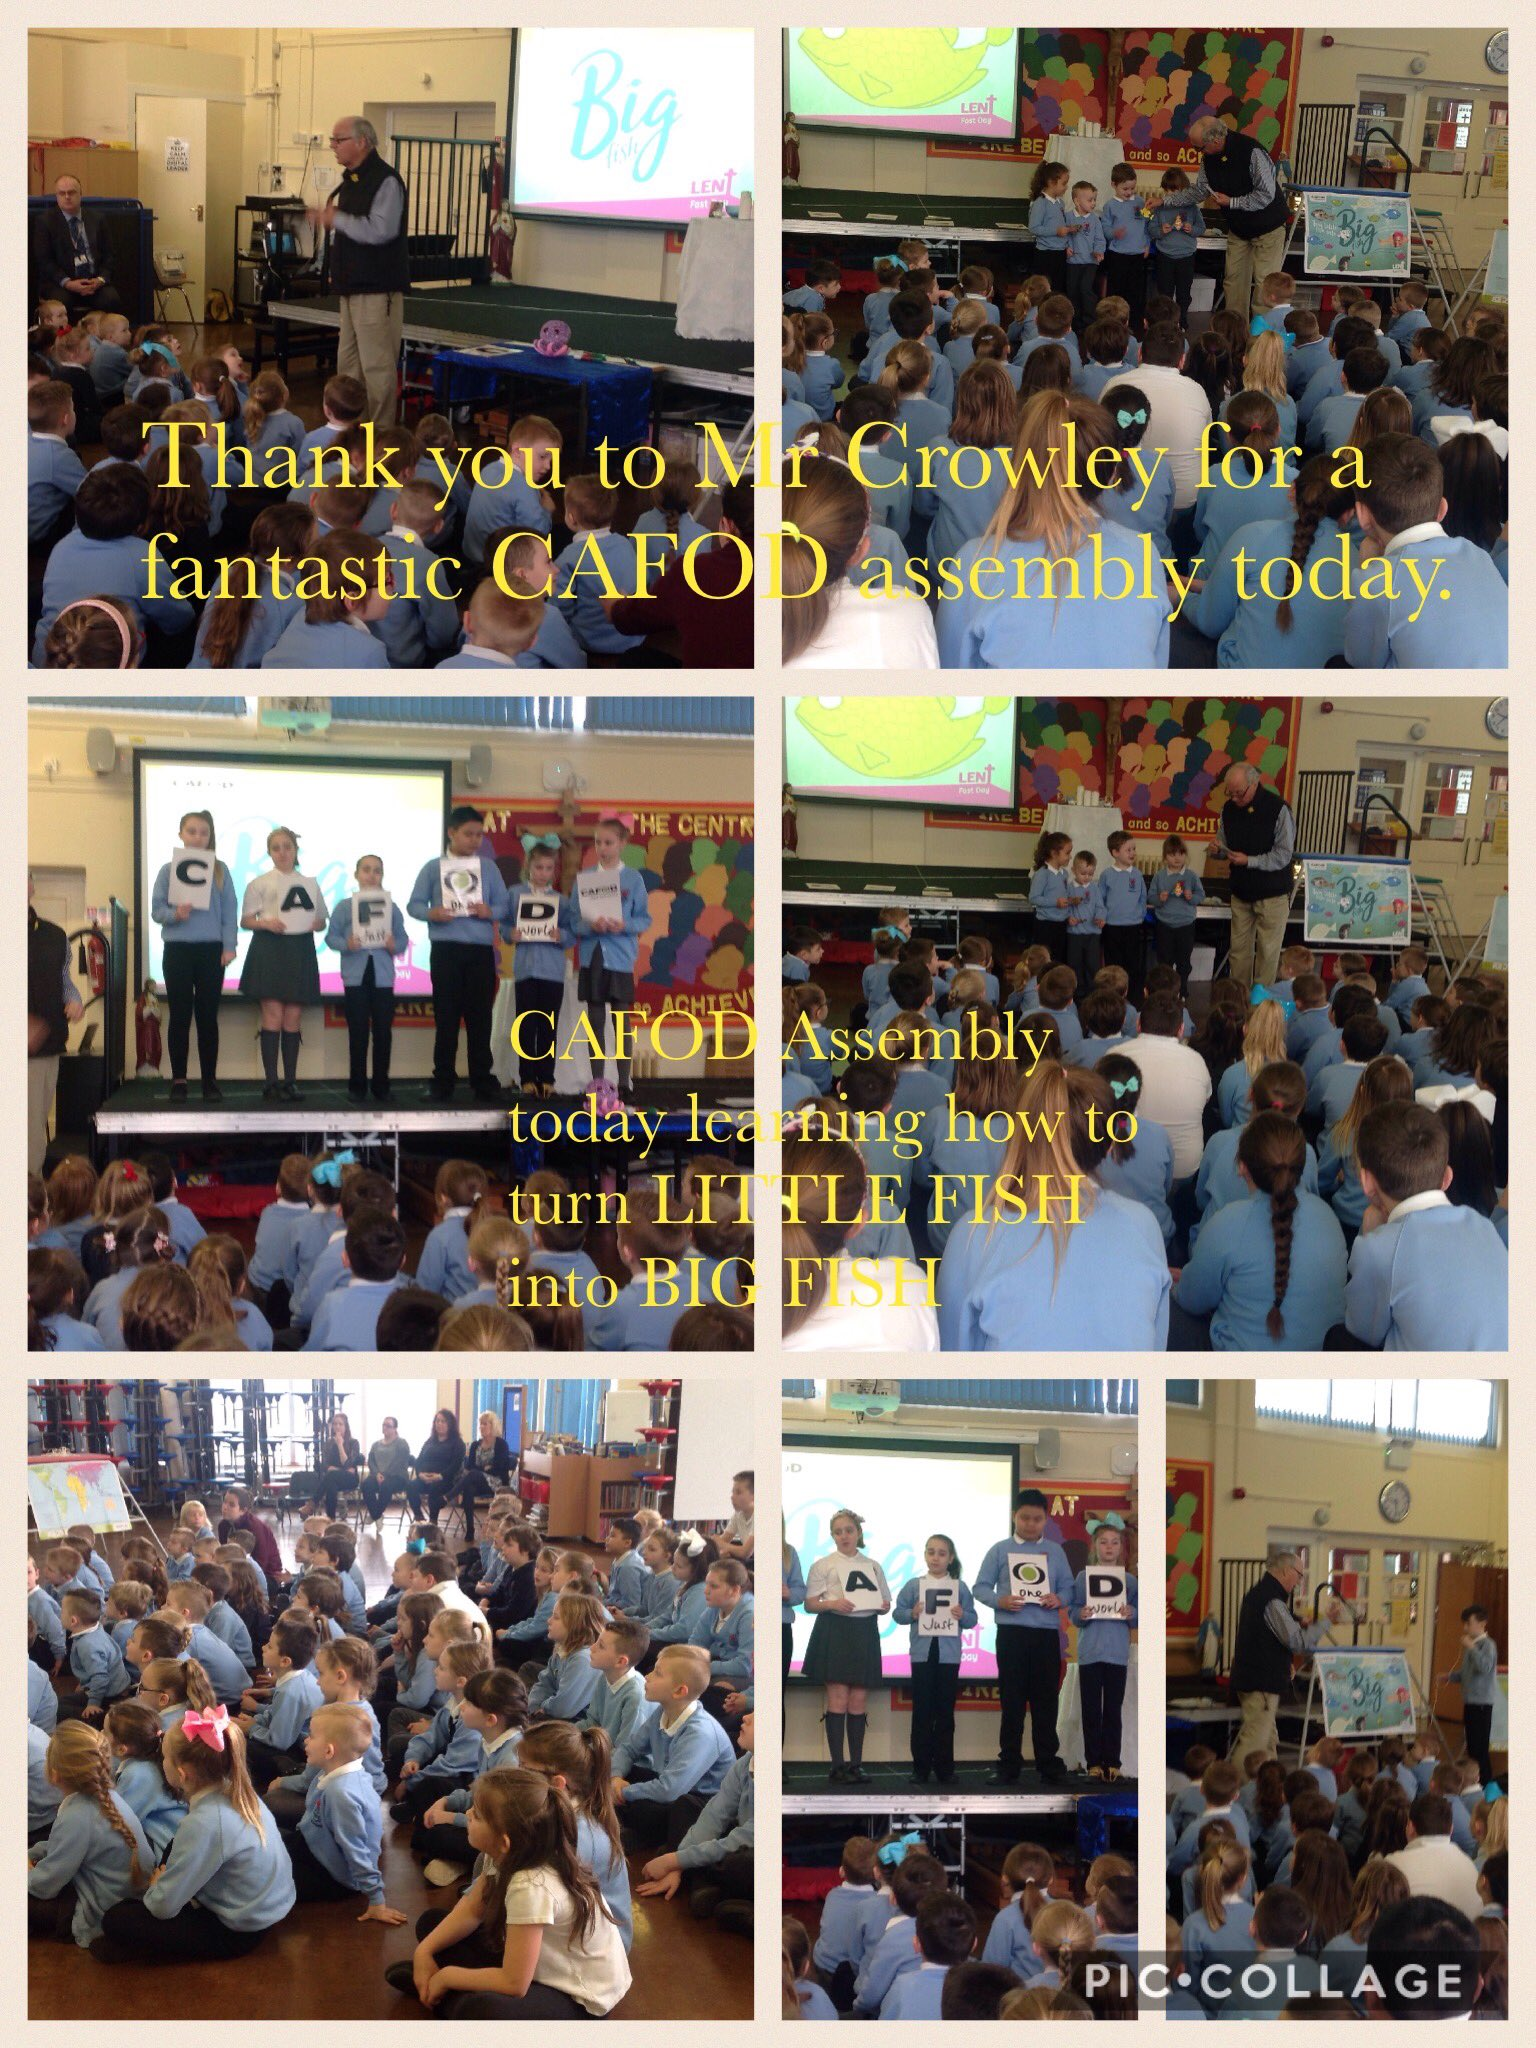 Thanks Chris Crowley for an inspirational CAFOD 'Big Fish' assembly.........@CAFODSouthWales https://t.co/L5pu3n4dlU